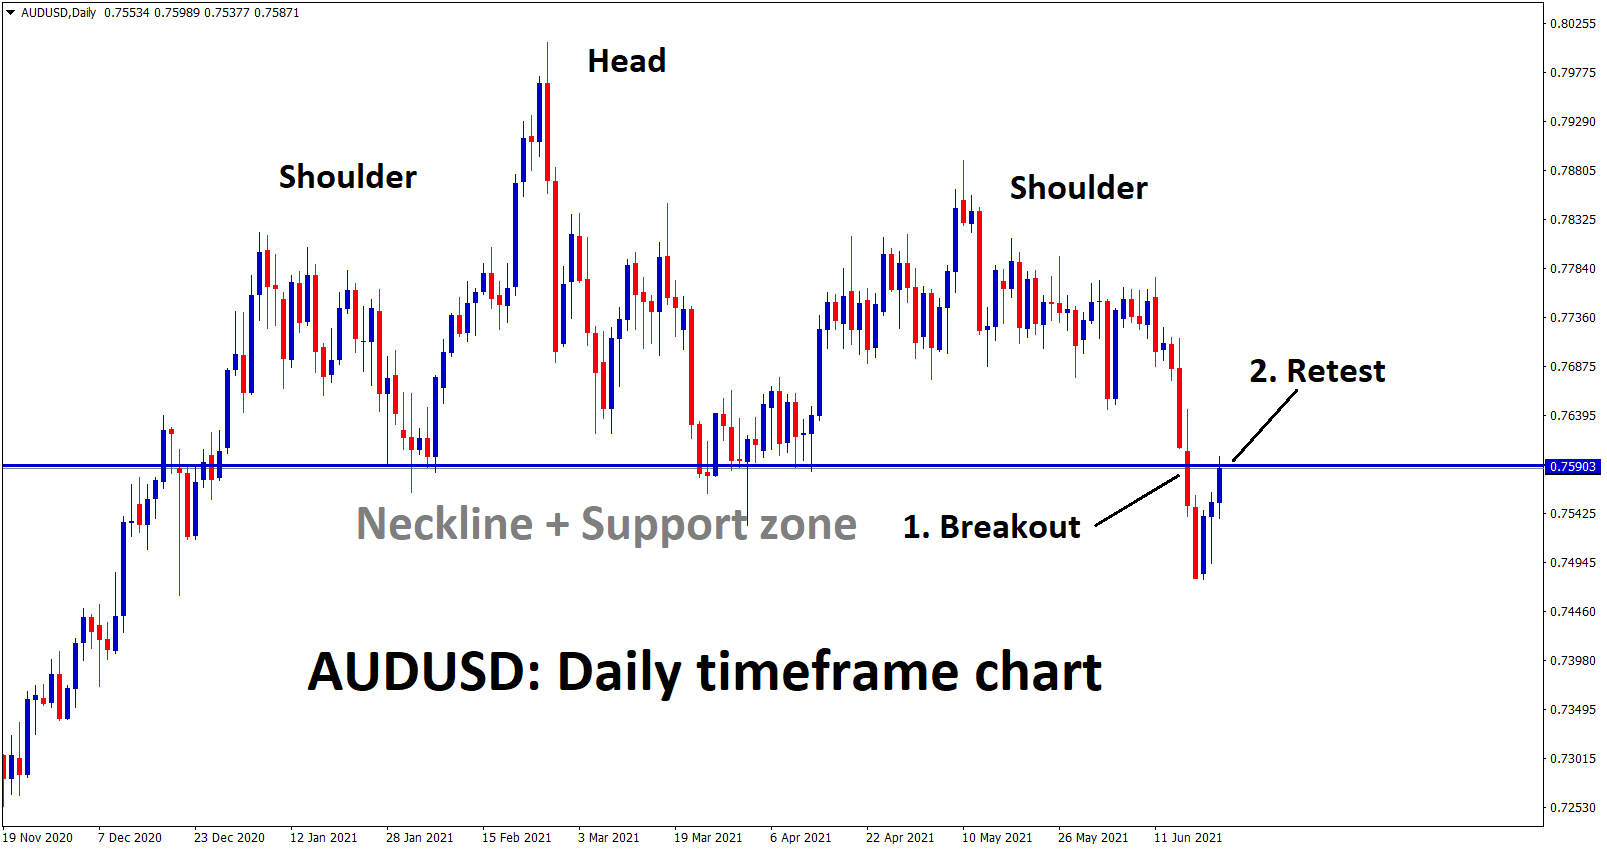 AUDUSD is retesting the neckline of the Head and Shoulder Pattern